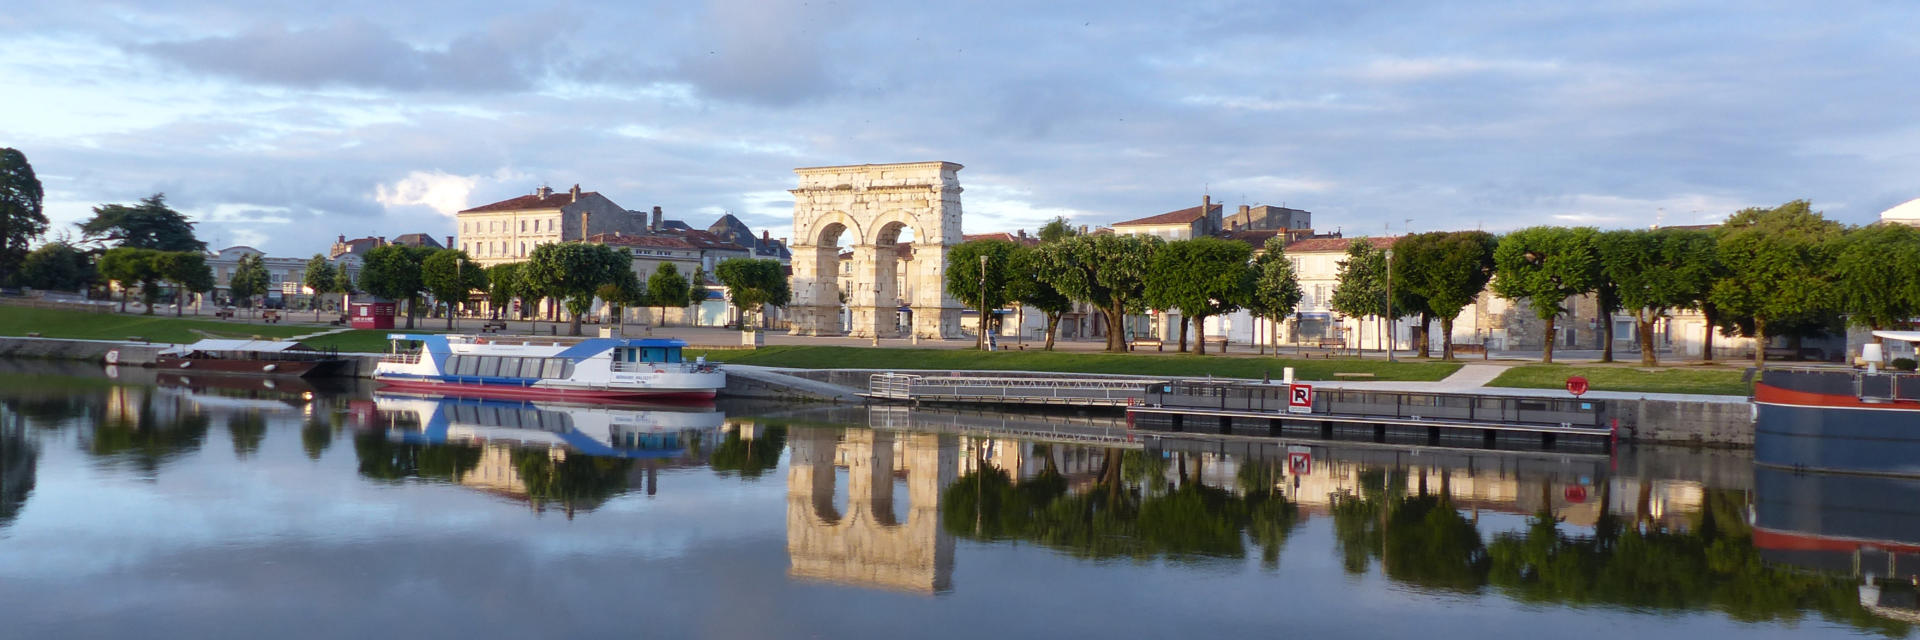 Vue de saintes et son arc de germanicus